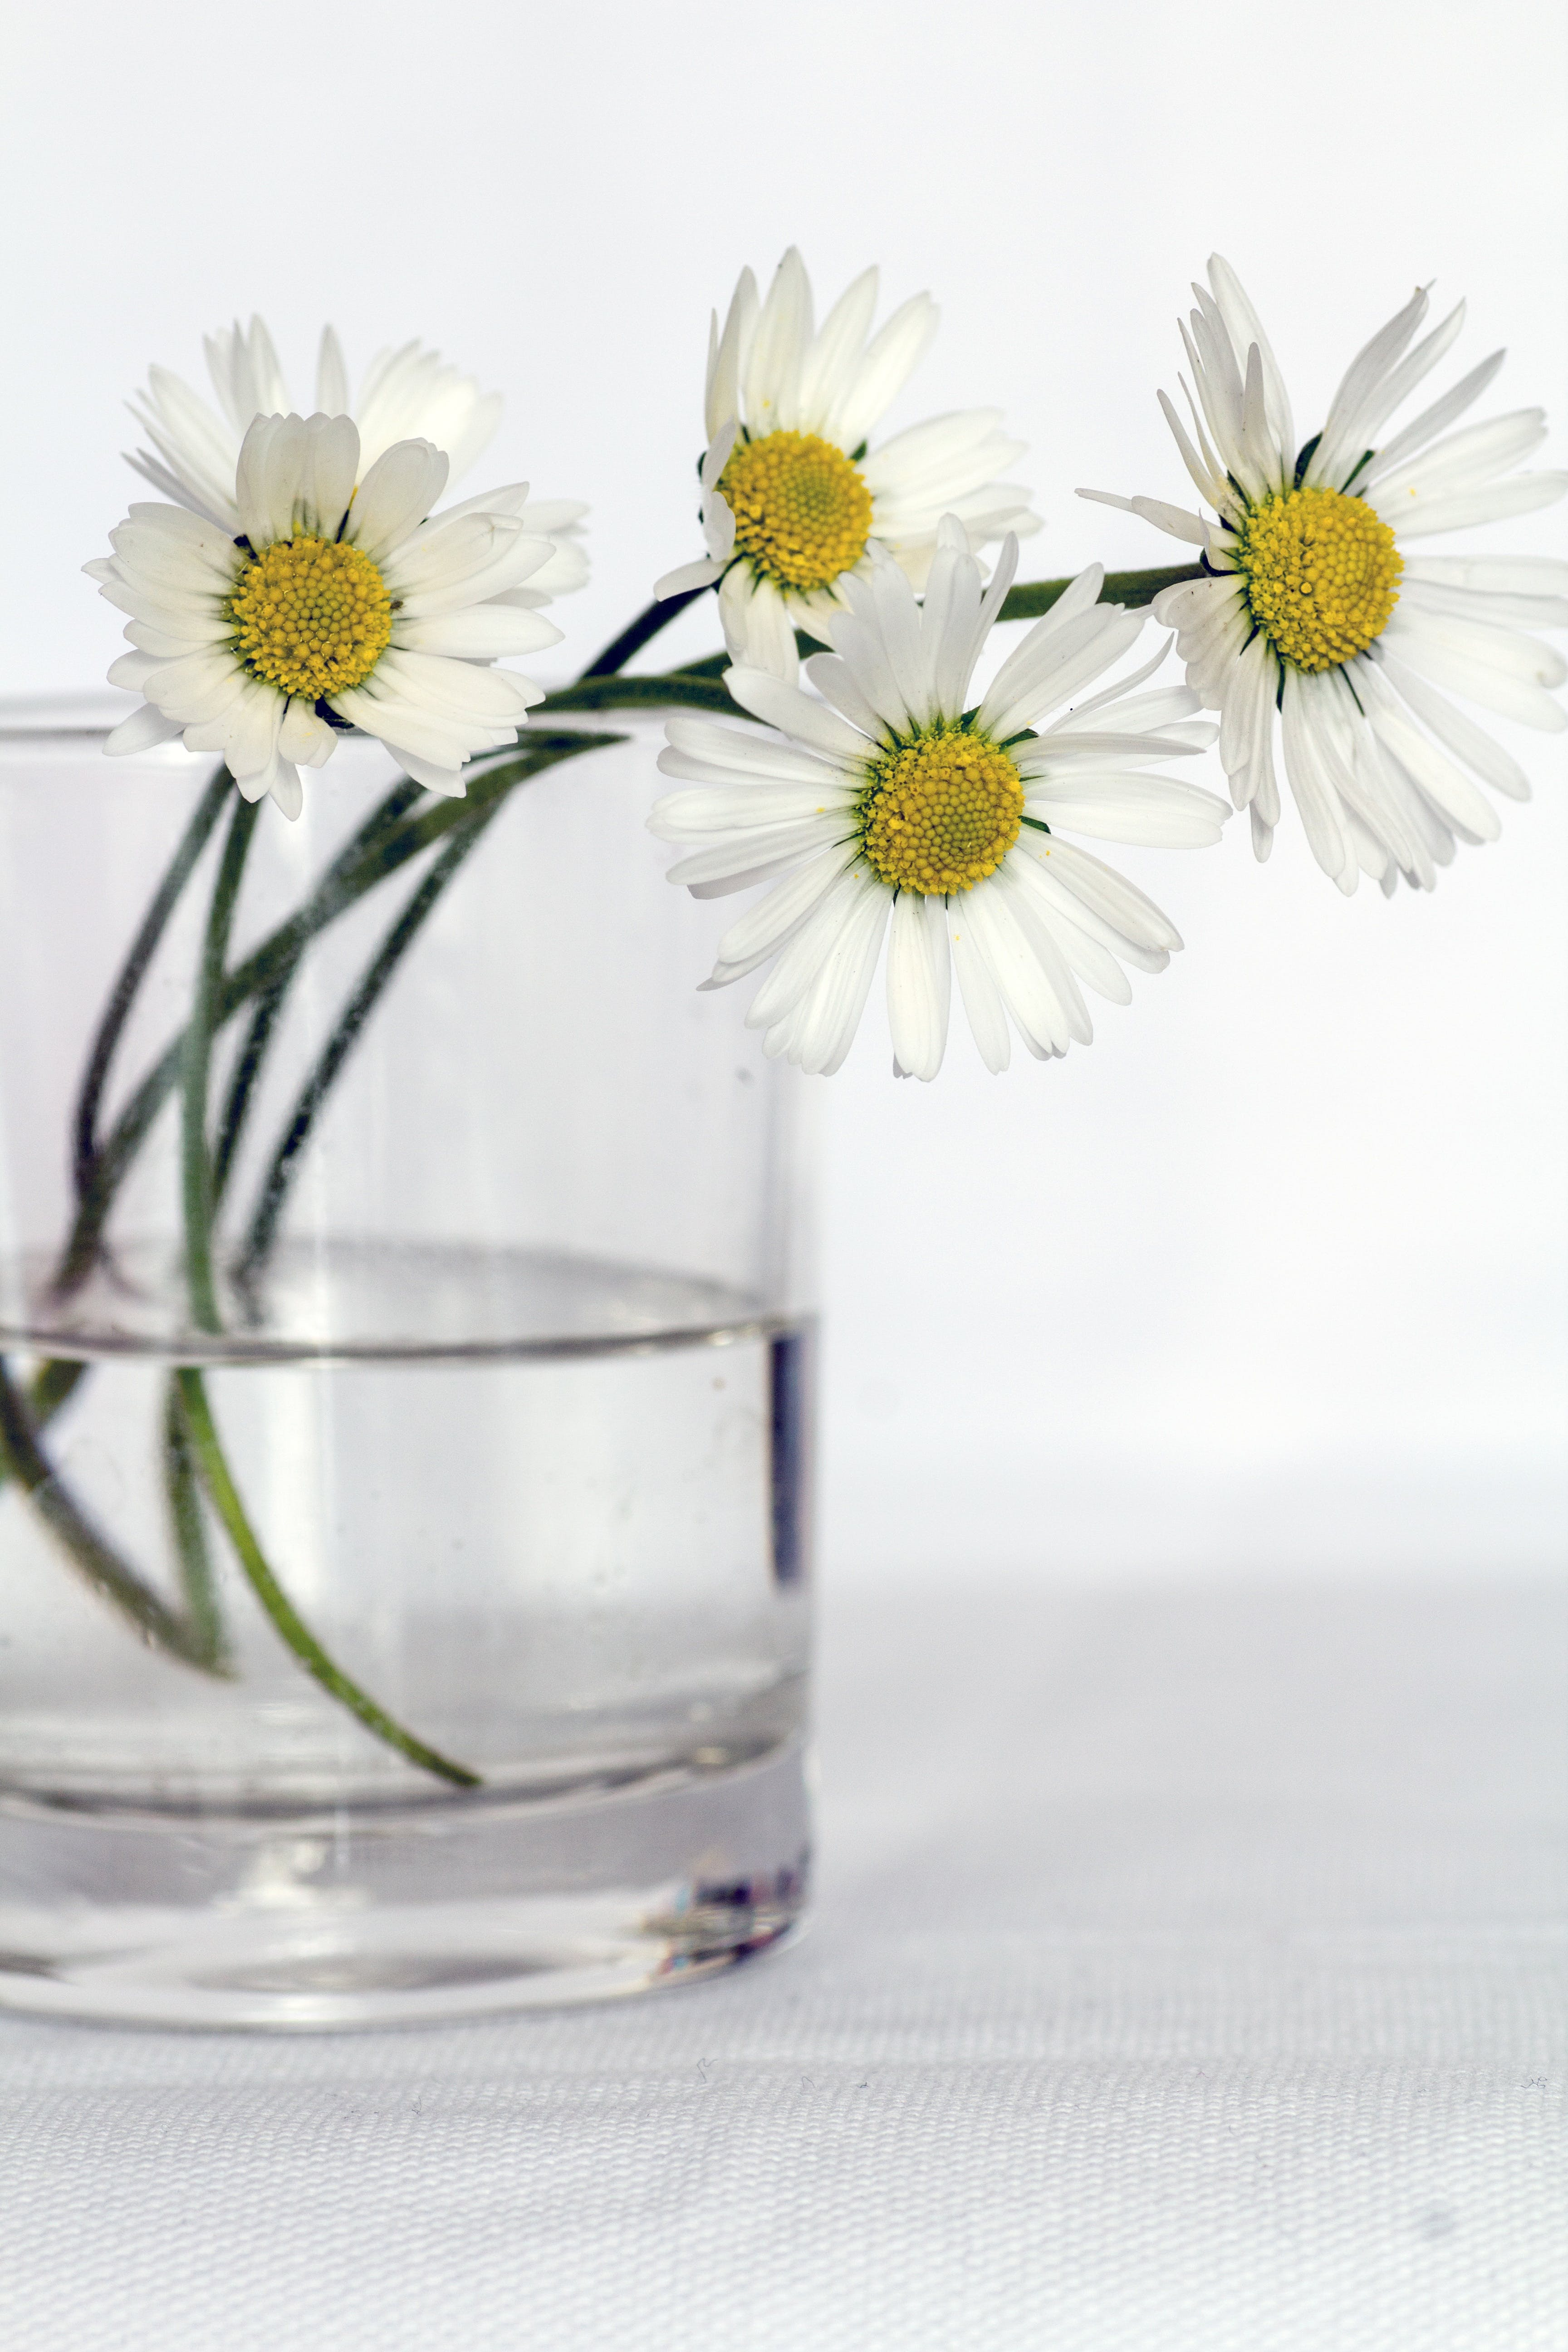 daisies, flowers, still life